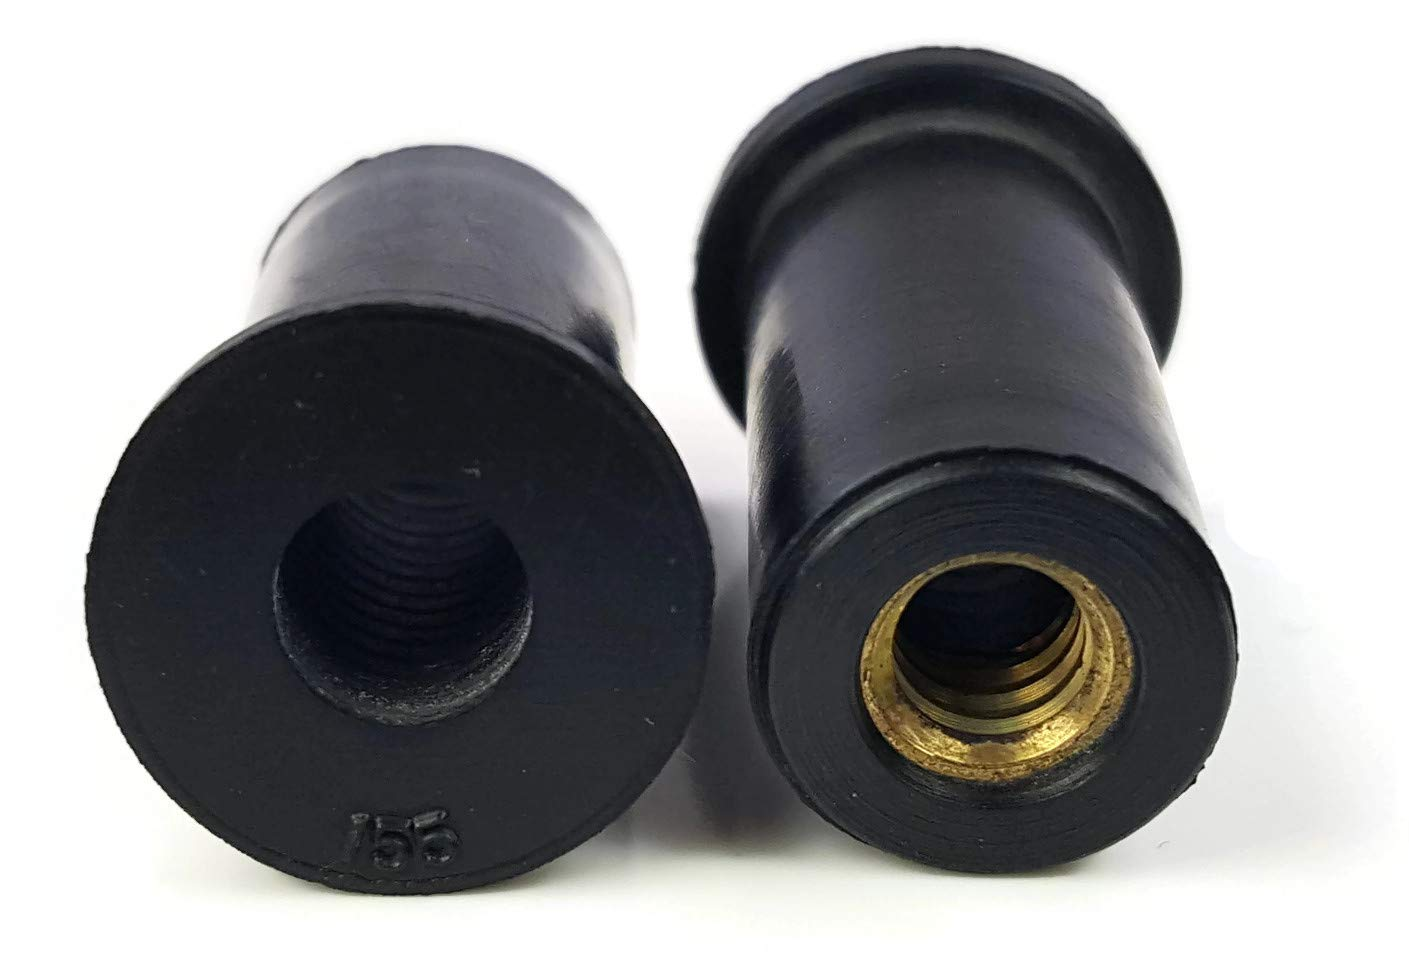 0.035-0.232 Grip 0.377 inch hole QTY 25 Rubber Well Nuts Brass Insert Expansion Nut SAE Inch Sizes #10-32 x 0.665